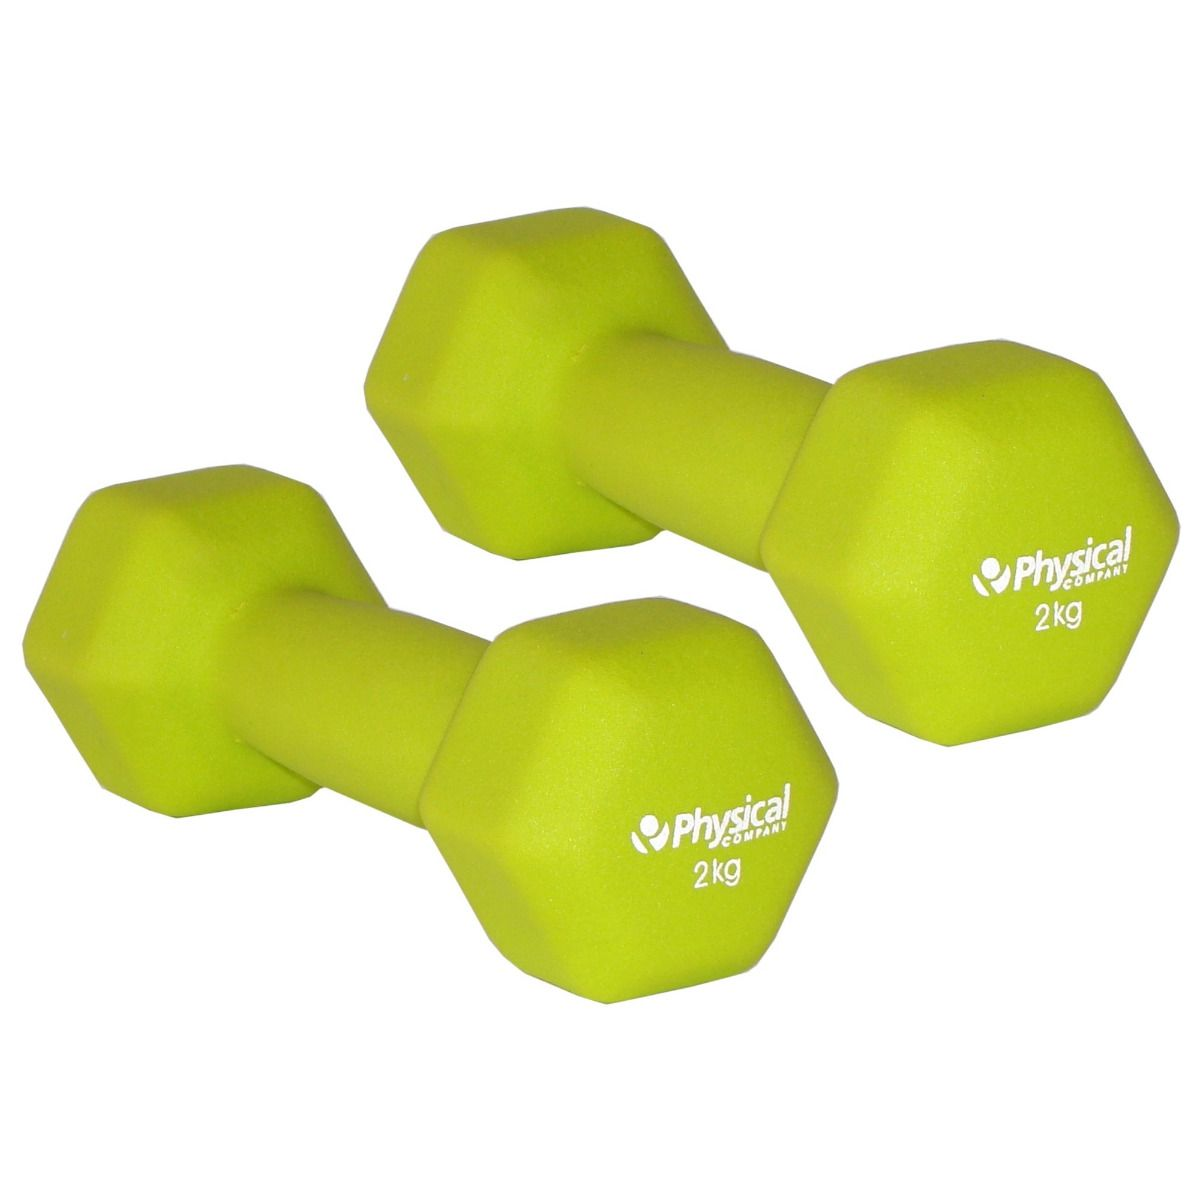 Colour Coded Neo Hex Dumbells 1kg 10kg Vipr 10 Kg Physical Company